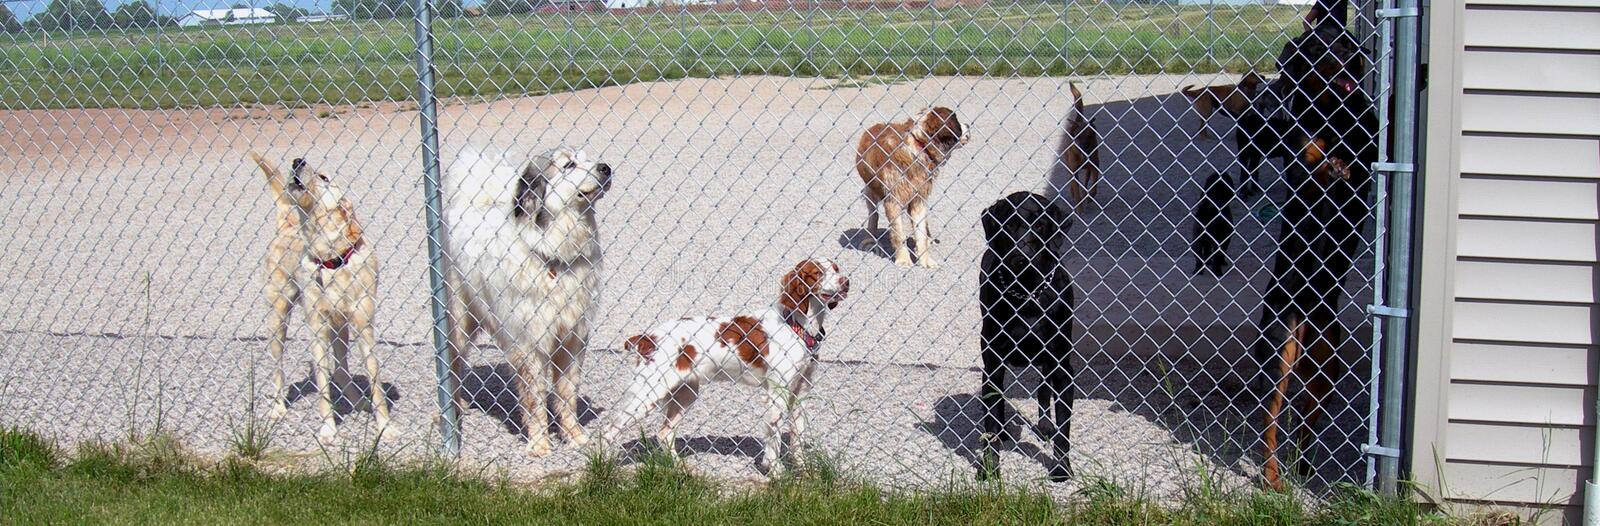 Puppy Day Care. A group of large dogs at doggie daycare take a break from play time to see who is going home first royalty free stock photos